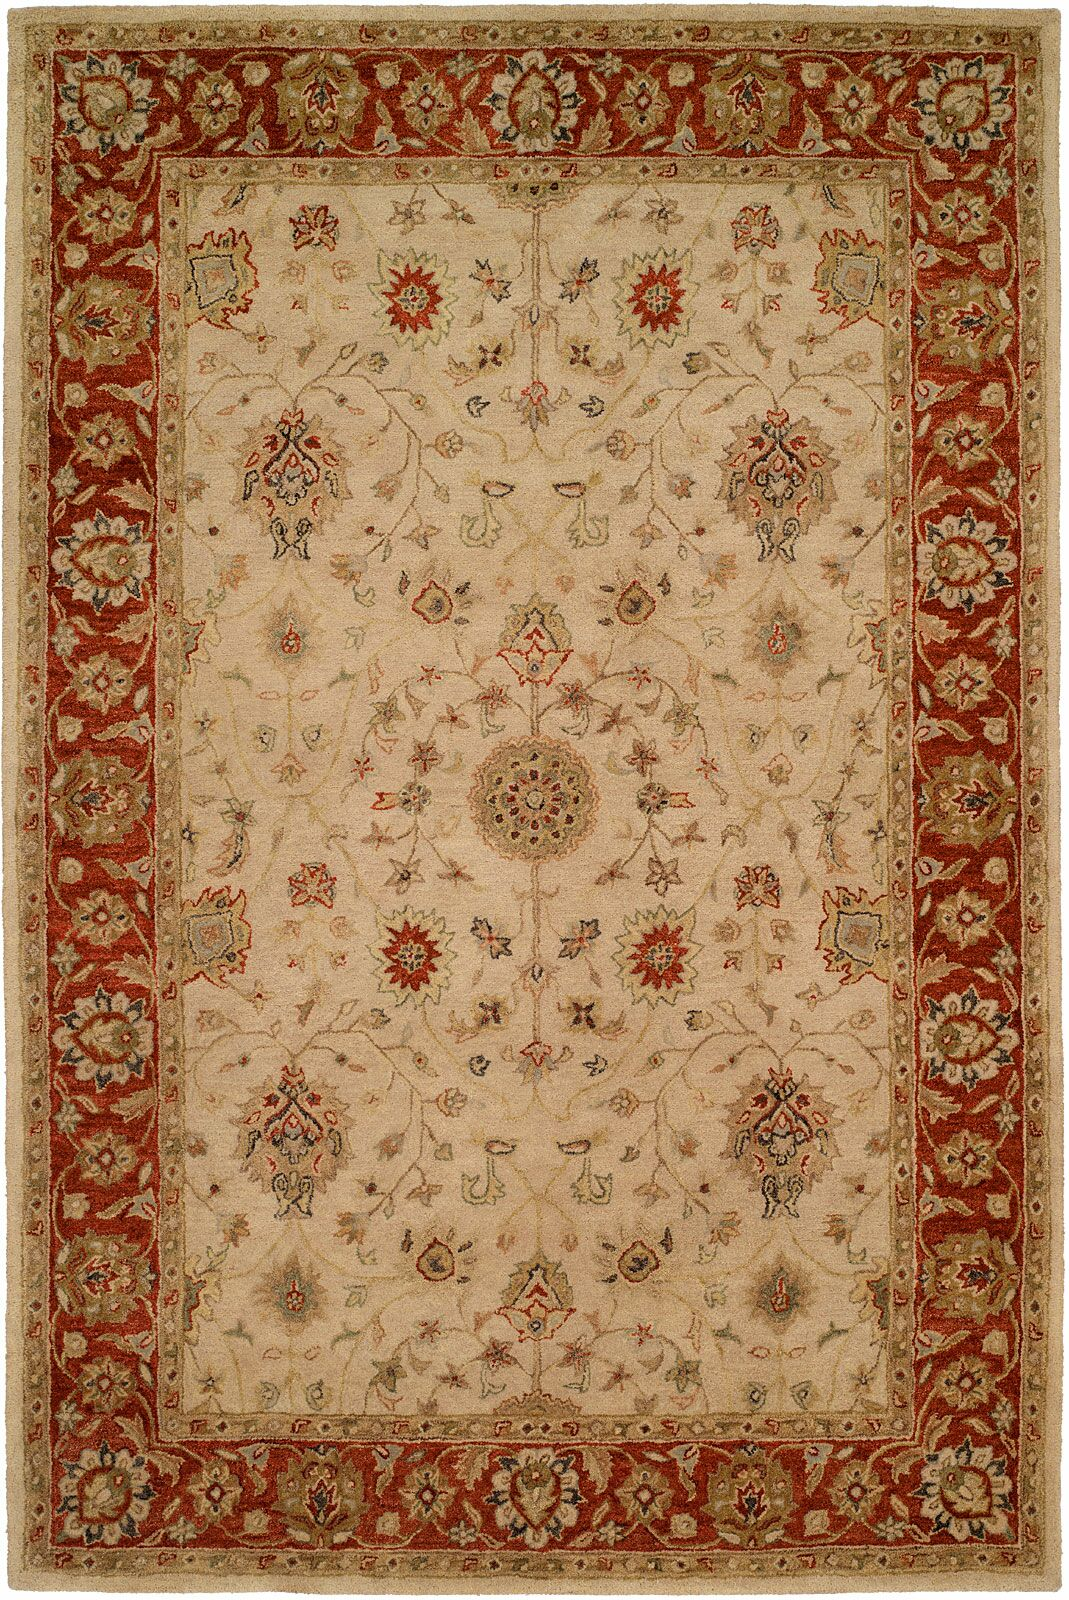 Chaudhari Hand-Woven Beige Area Rug Rug Size: Rectangle 5' x 8'